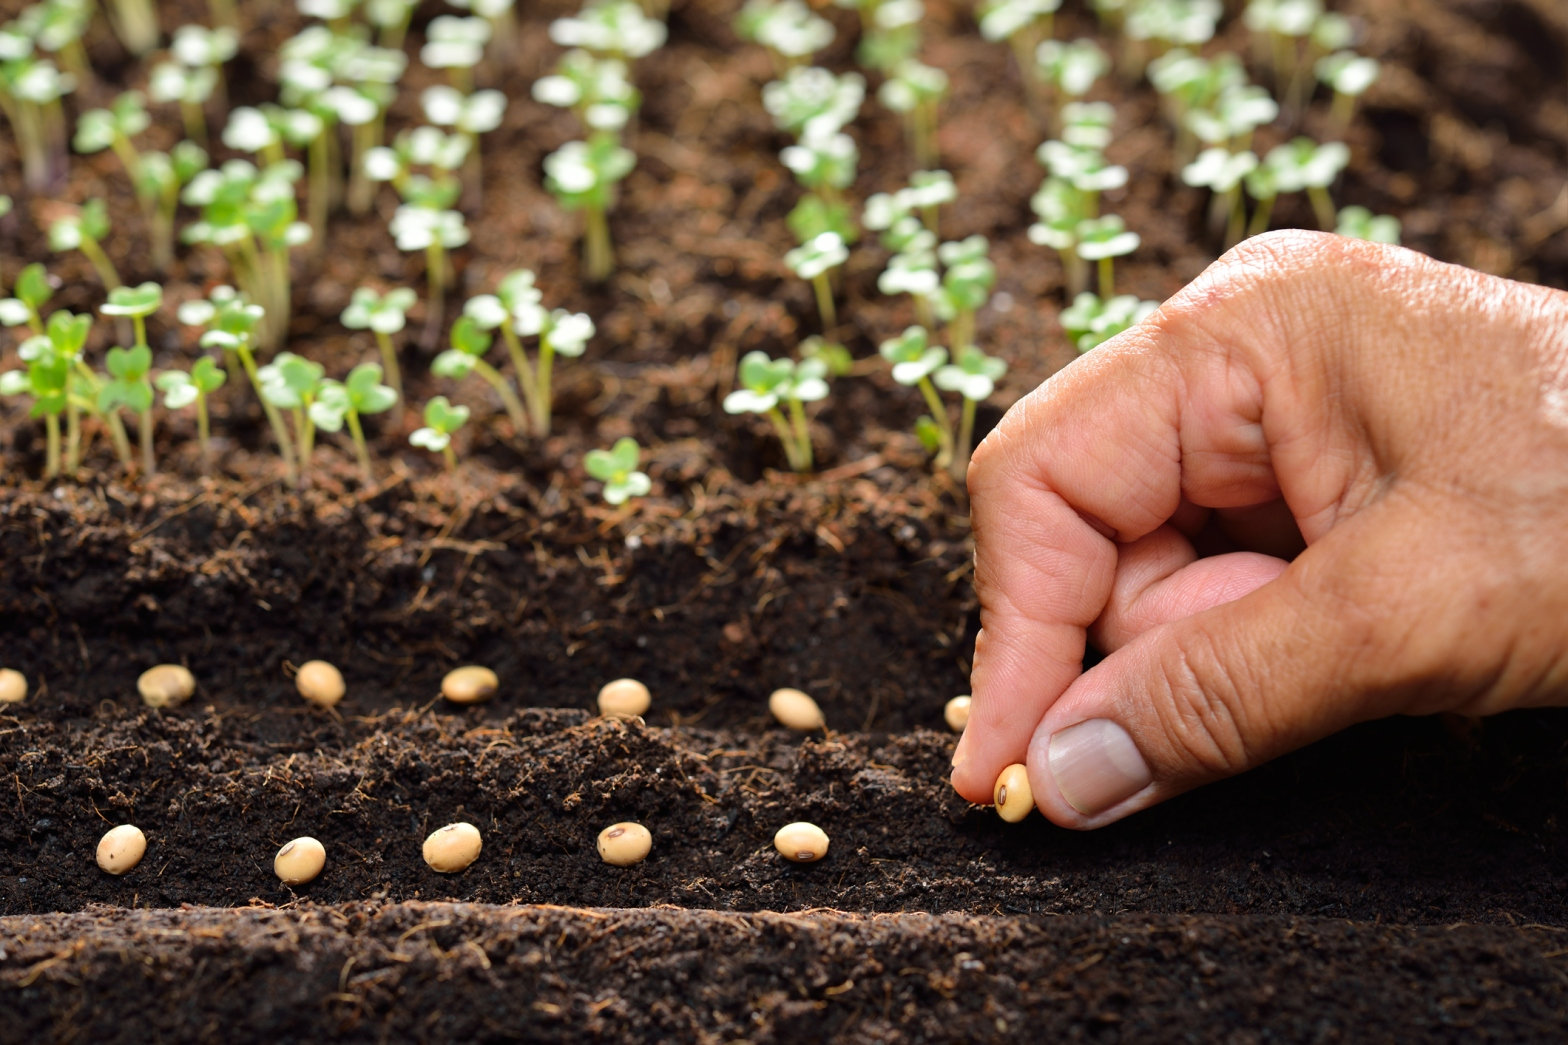 Image of a hand planting seeds